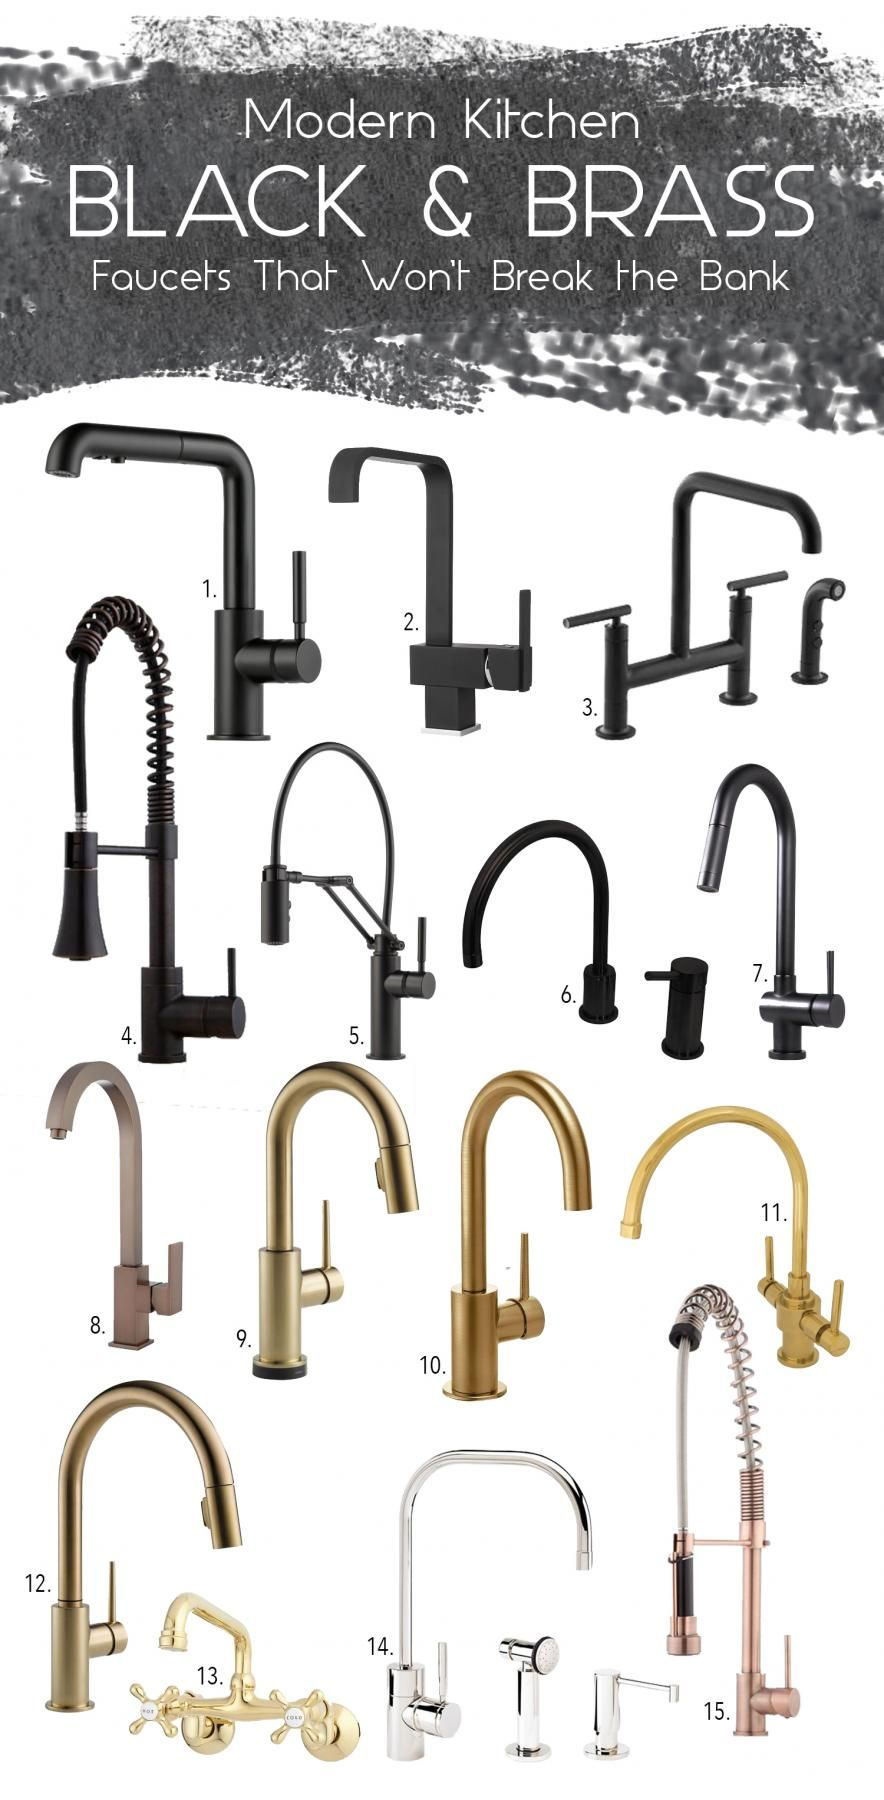 Black Brass Faucet For Your Kitchen And Bathroom At Every Price Point Brass Kitchen Faucet Kitchen Faucet Kitchen Faucet Farmhouse